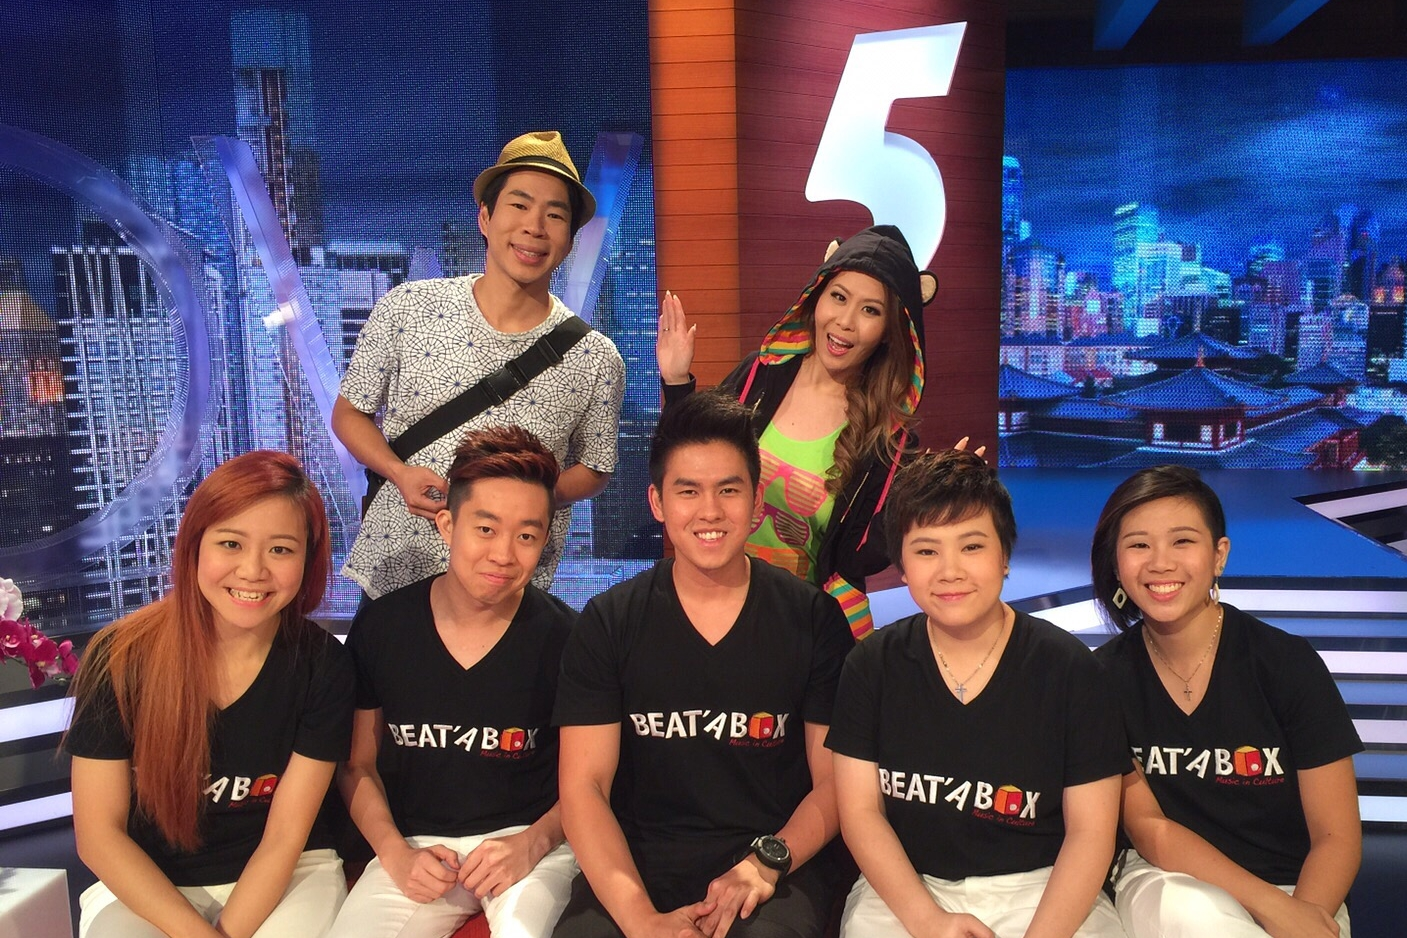 Channel 5 Show